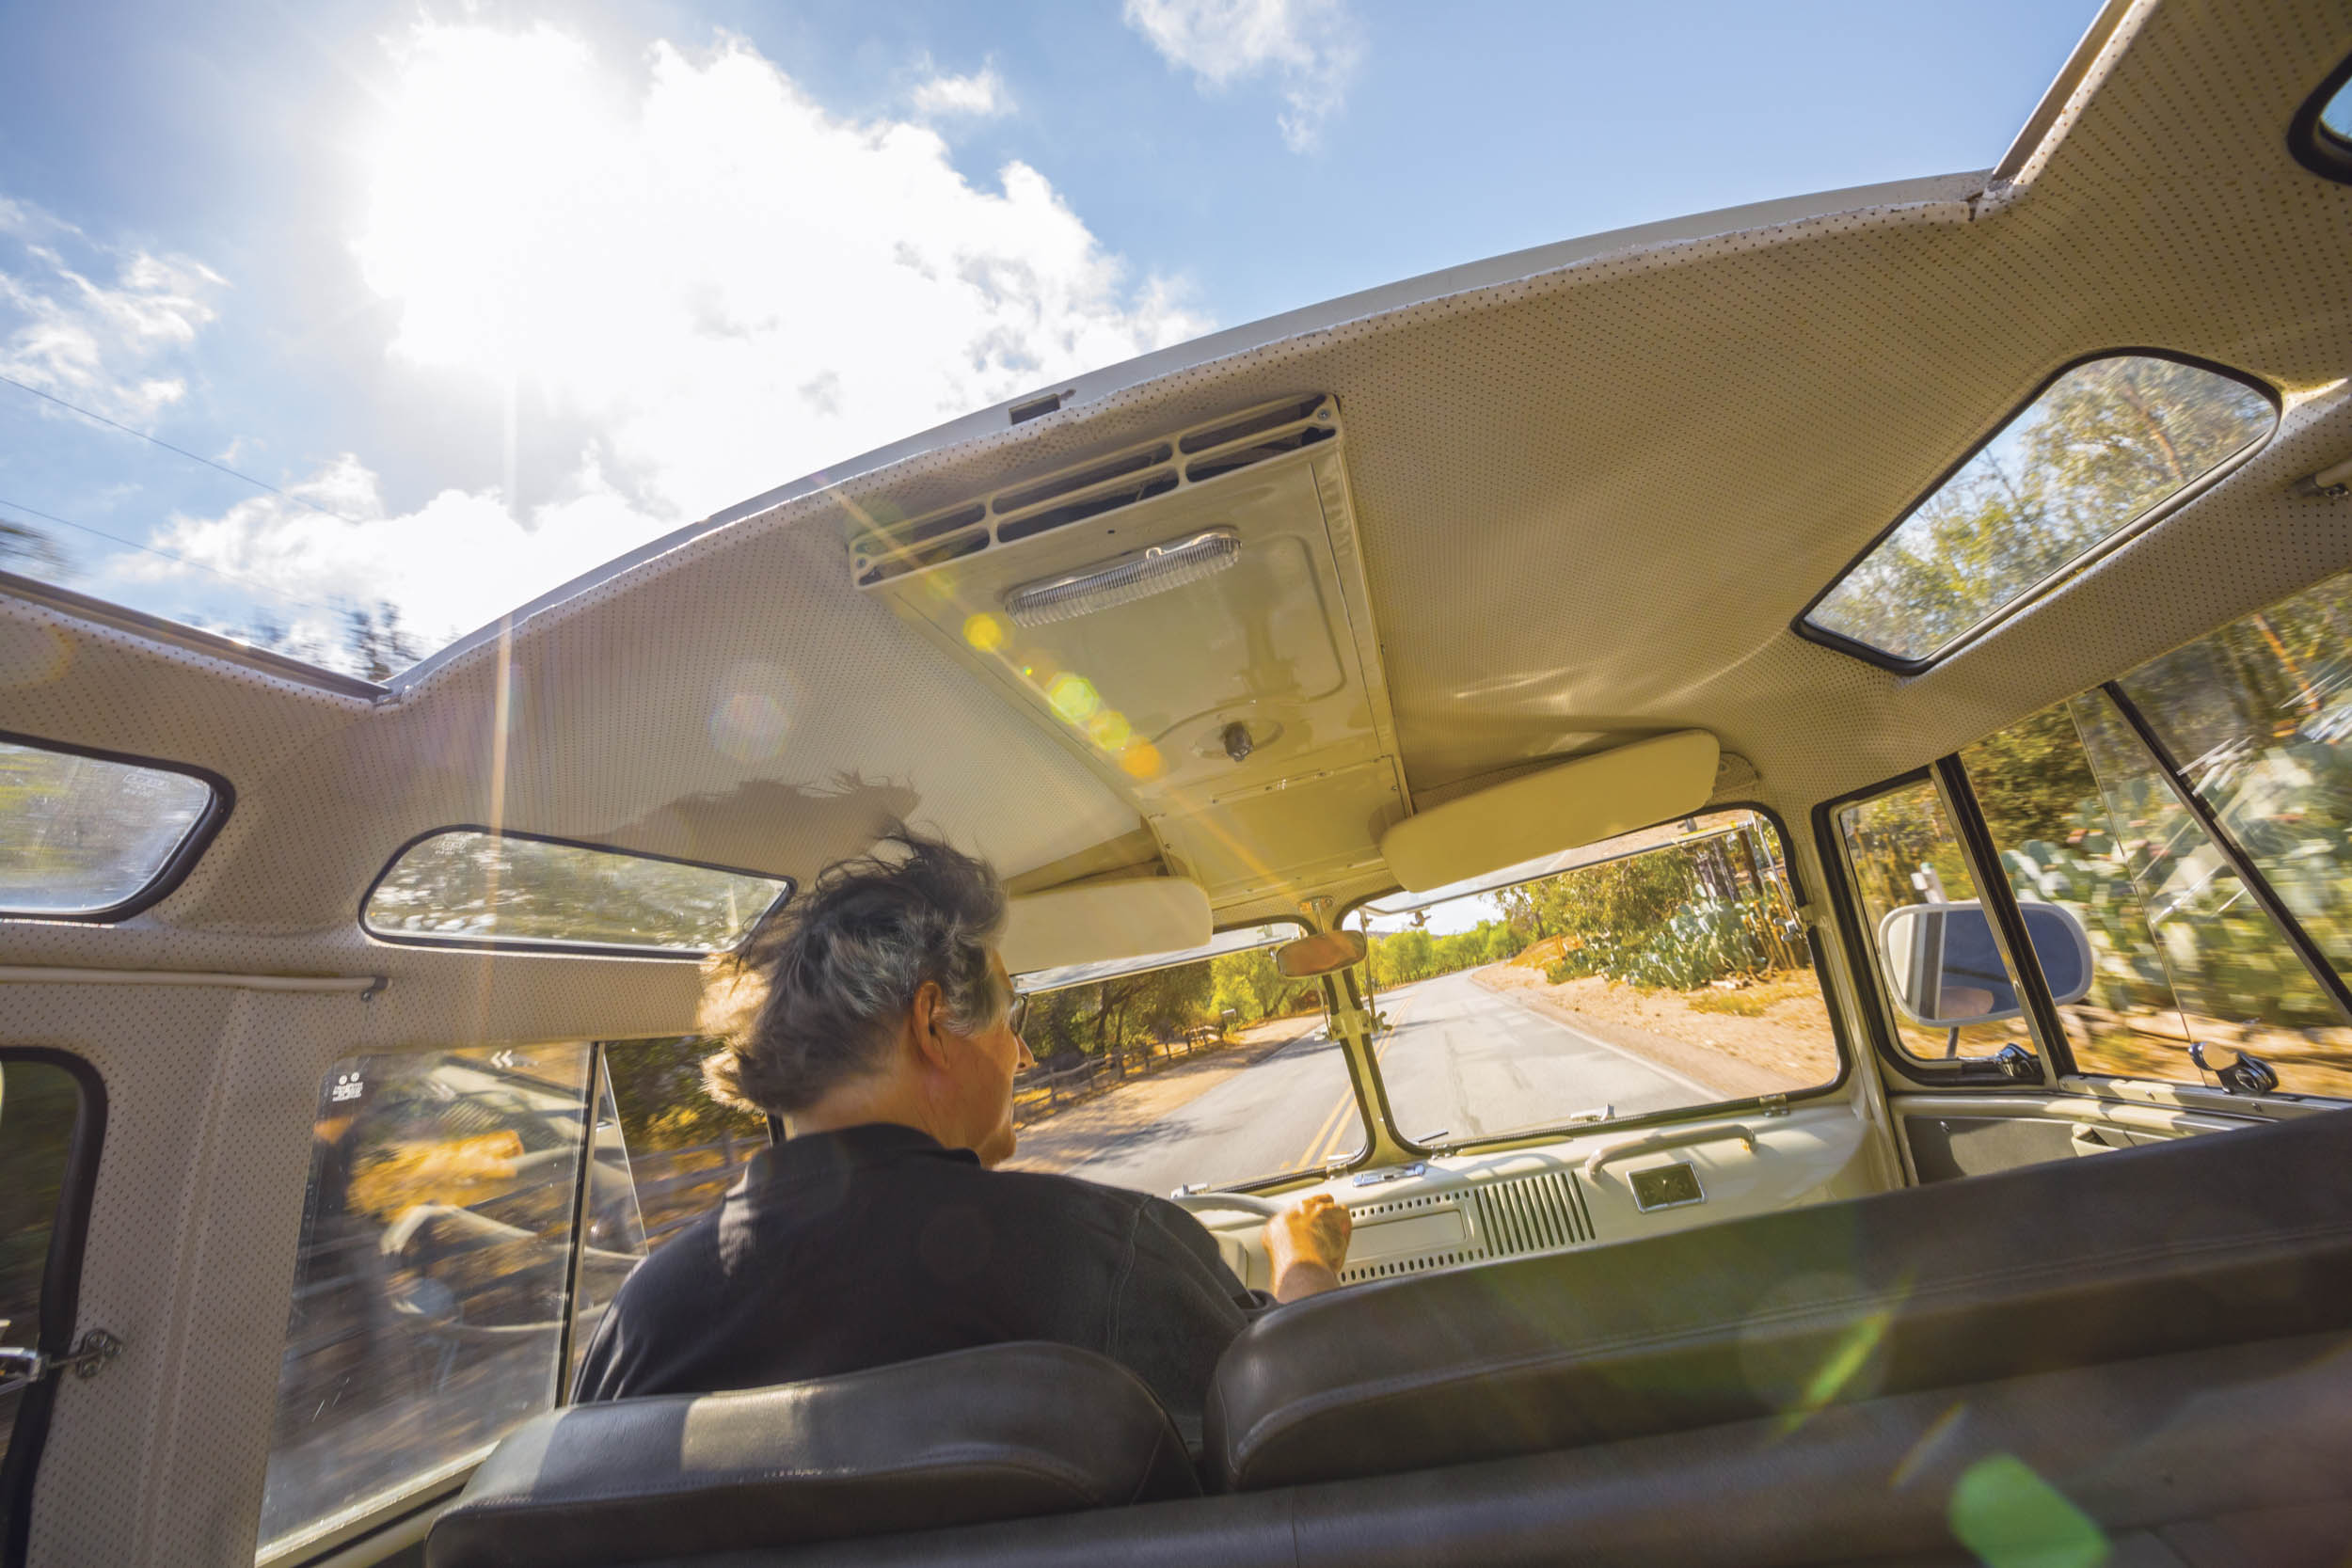 Zelectric Motors founder David Benardo basks in the sun in a 21-window VW Microbus with an 85-hp electric motor in place of the stock fourbanger.